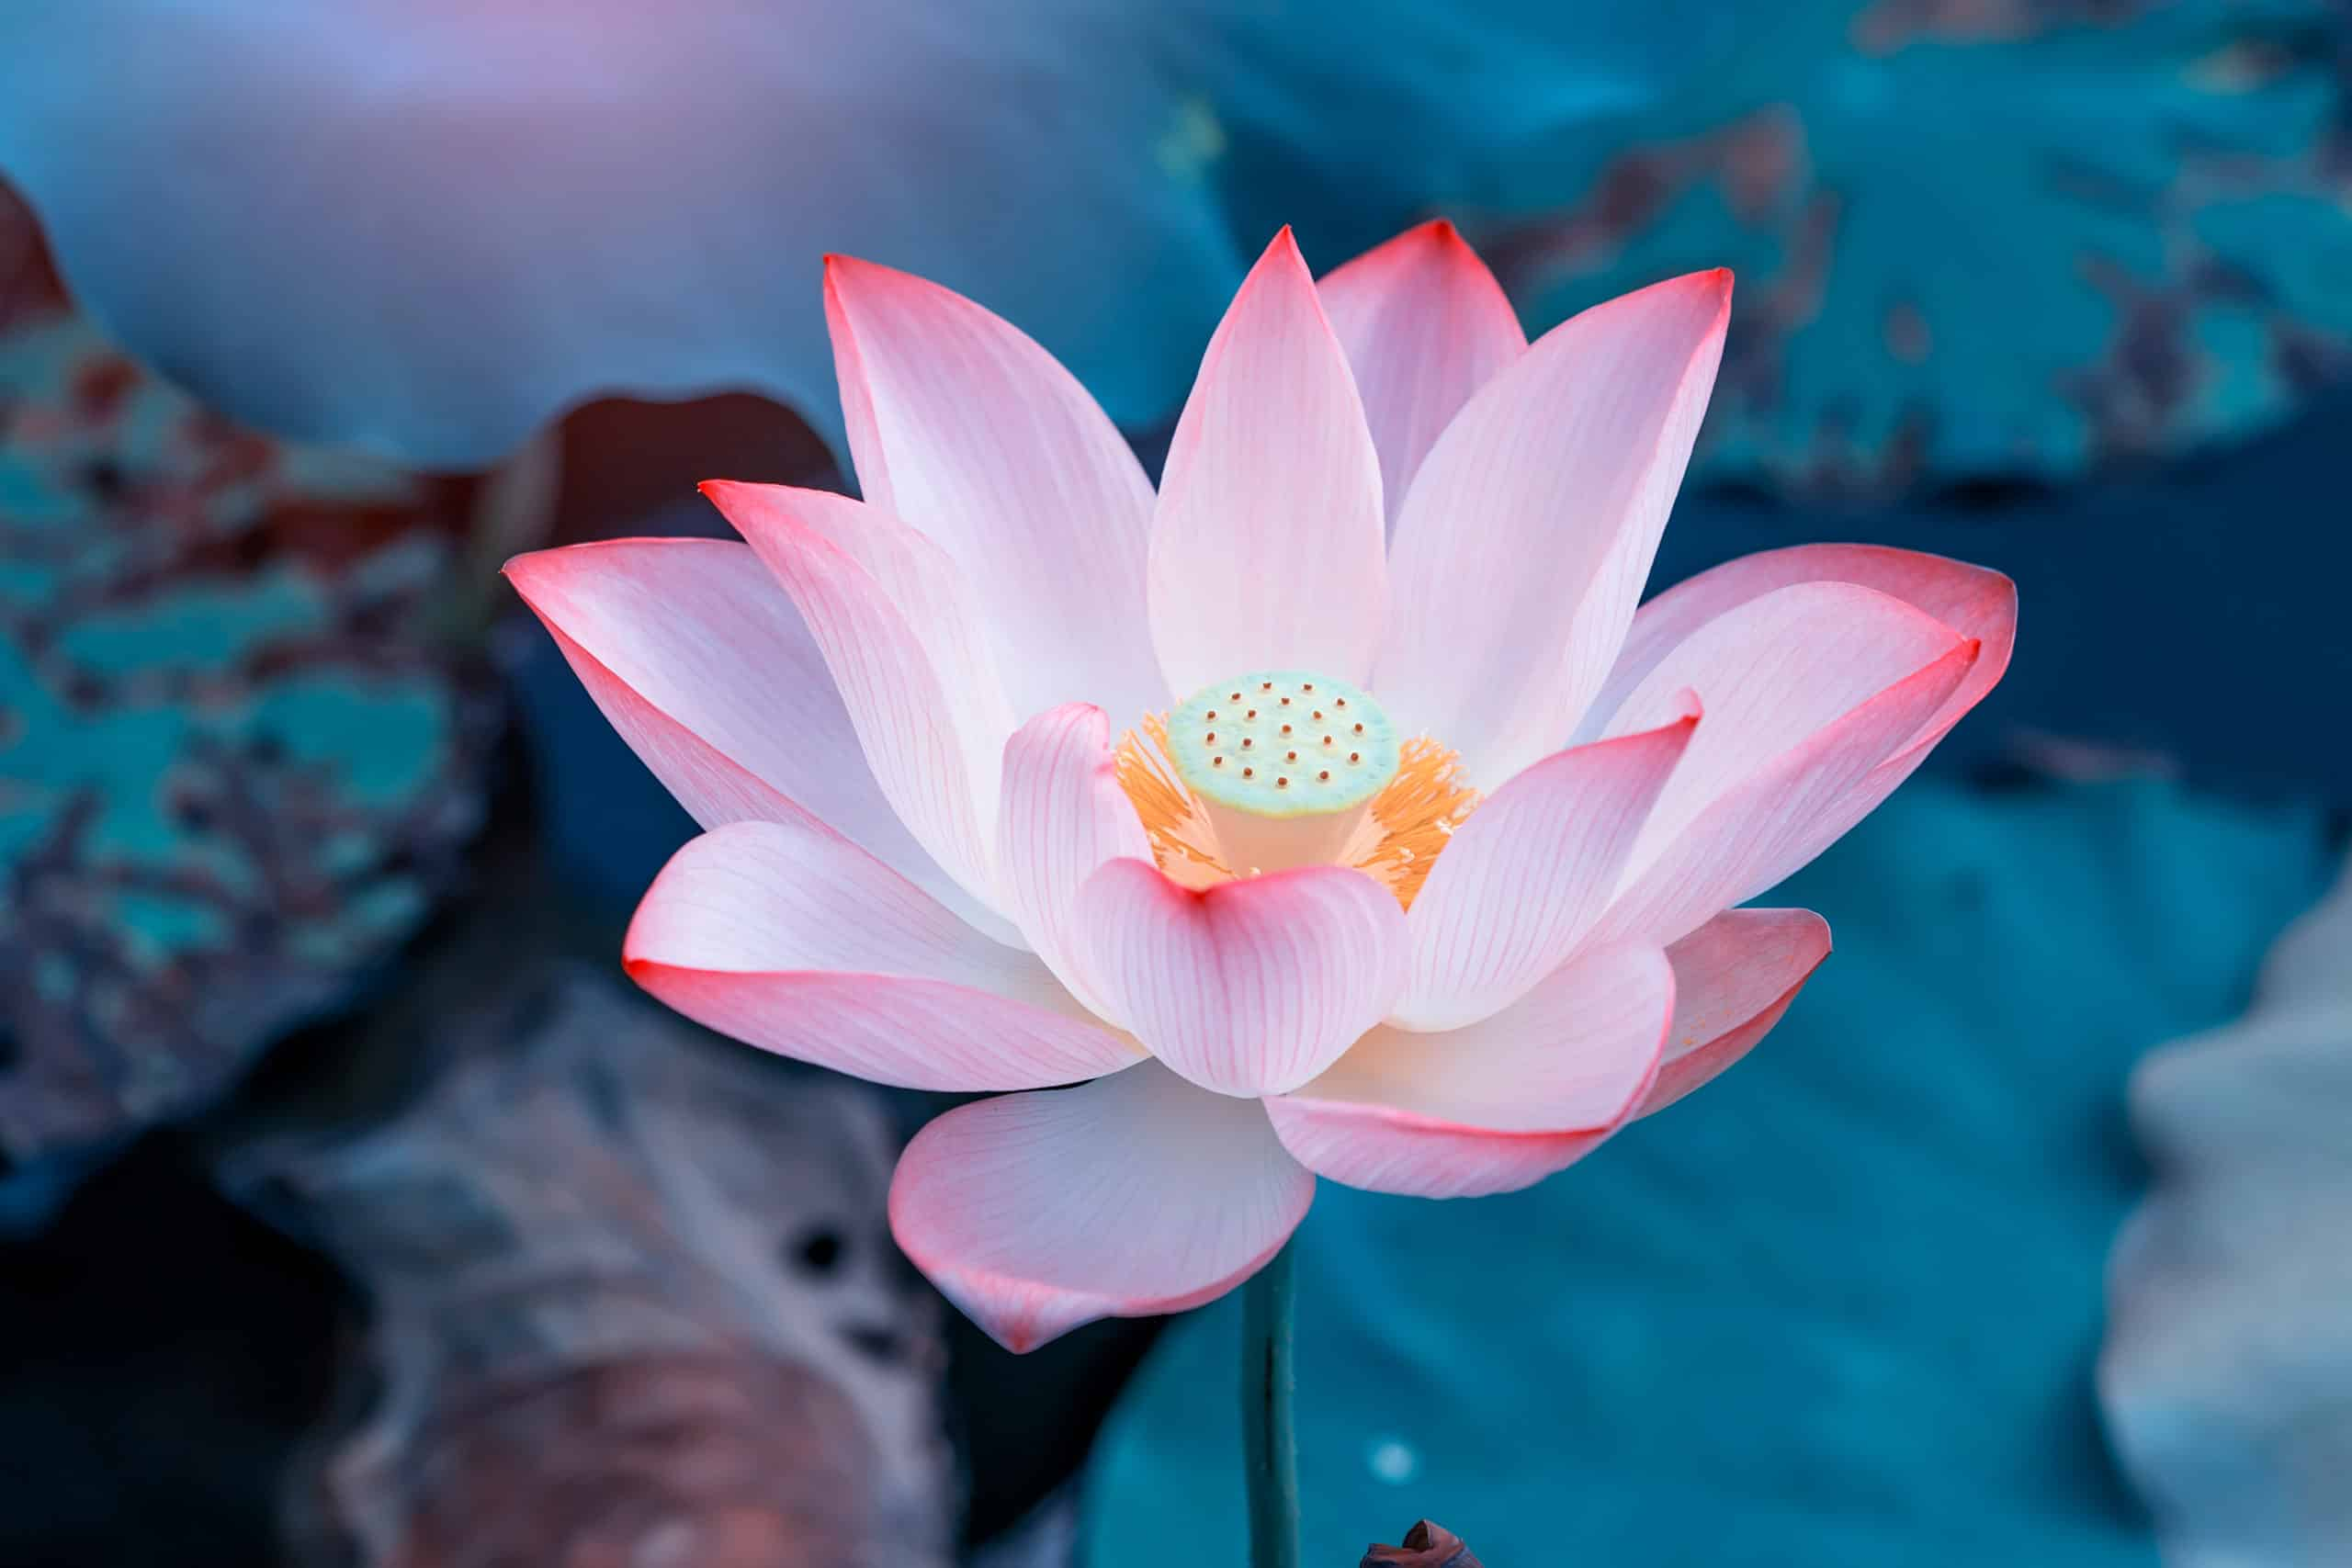 A Pink Lotus Flower, Symbols of Femininity Throughout the World